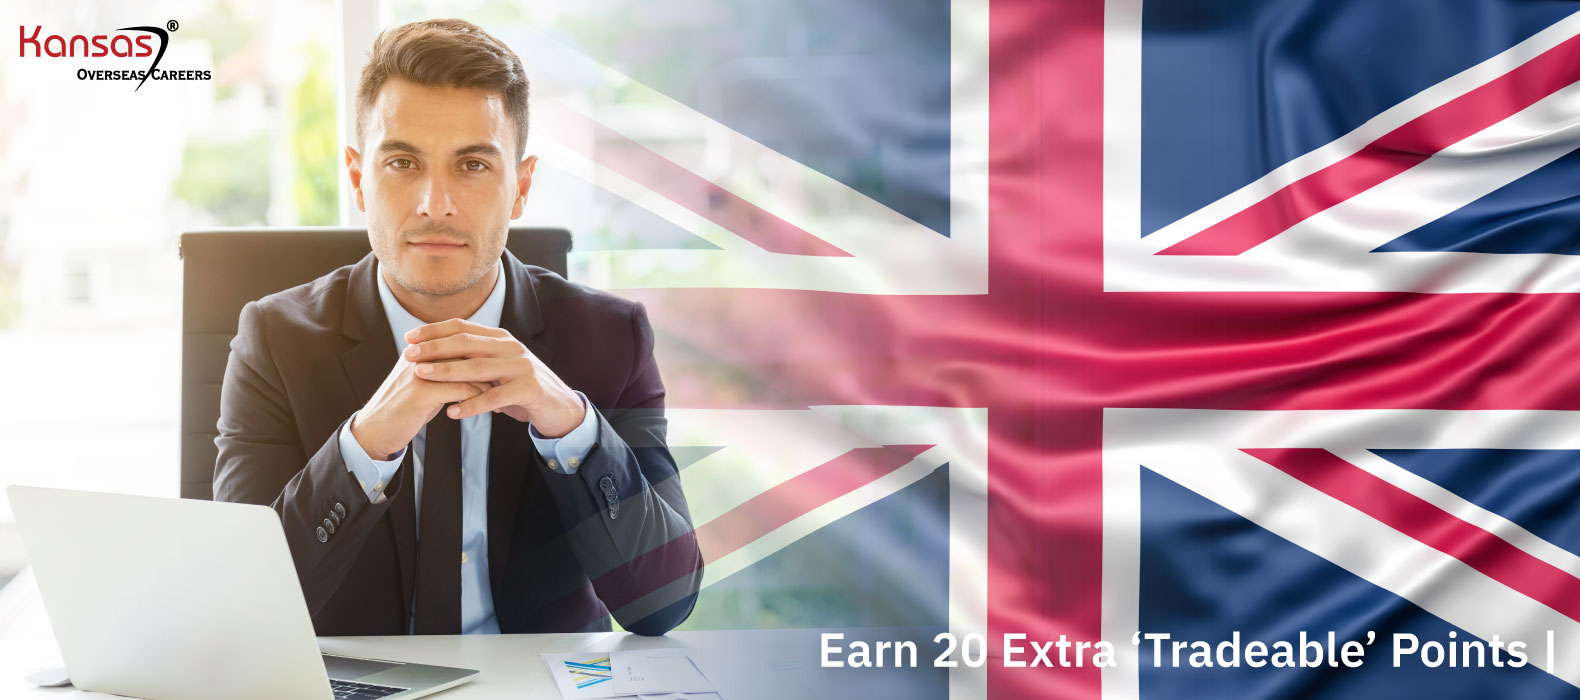 earn-20-extra-'tradeable'-points-under-the-Skilled-Worker-Route